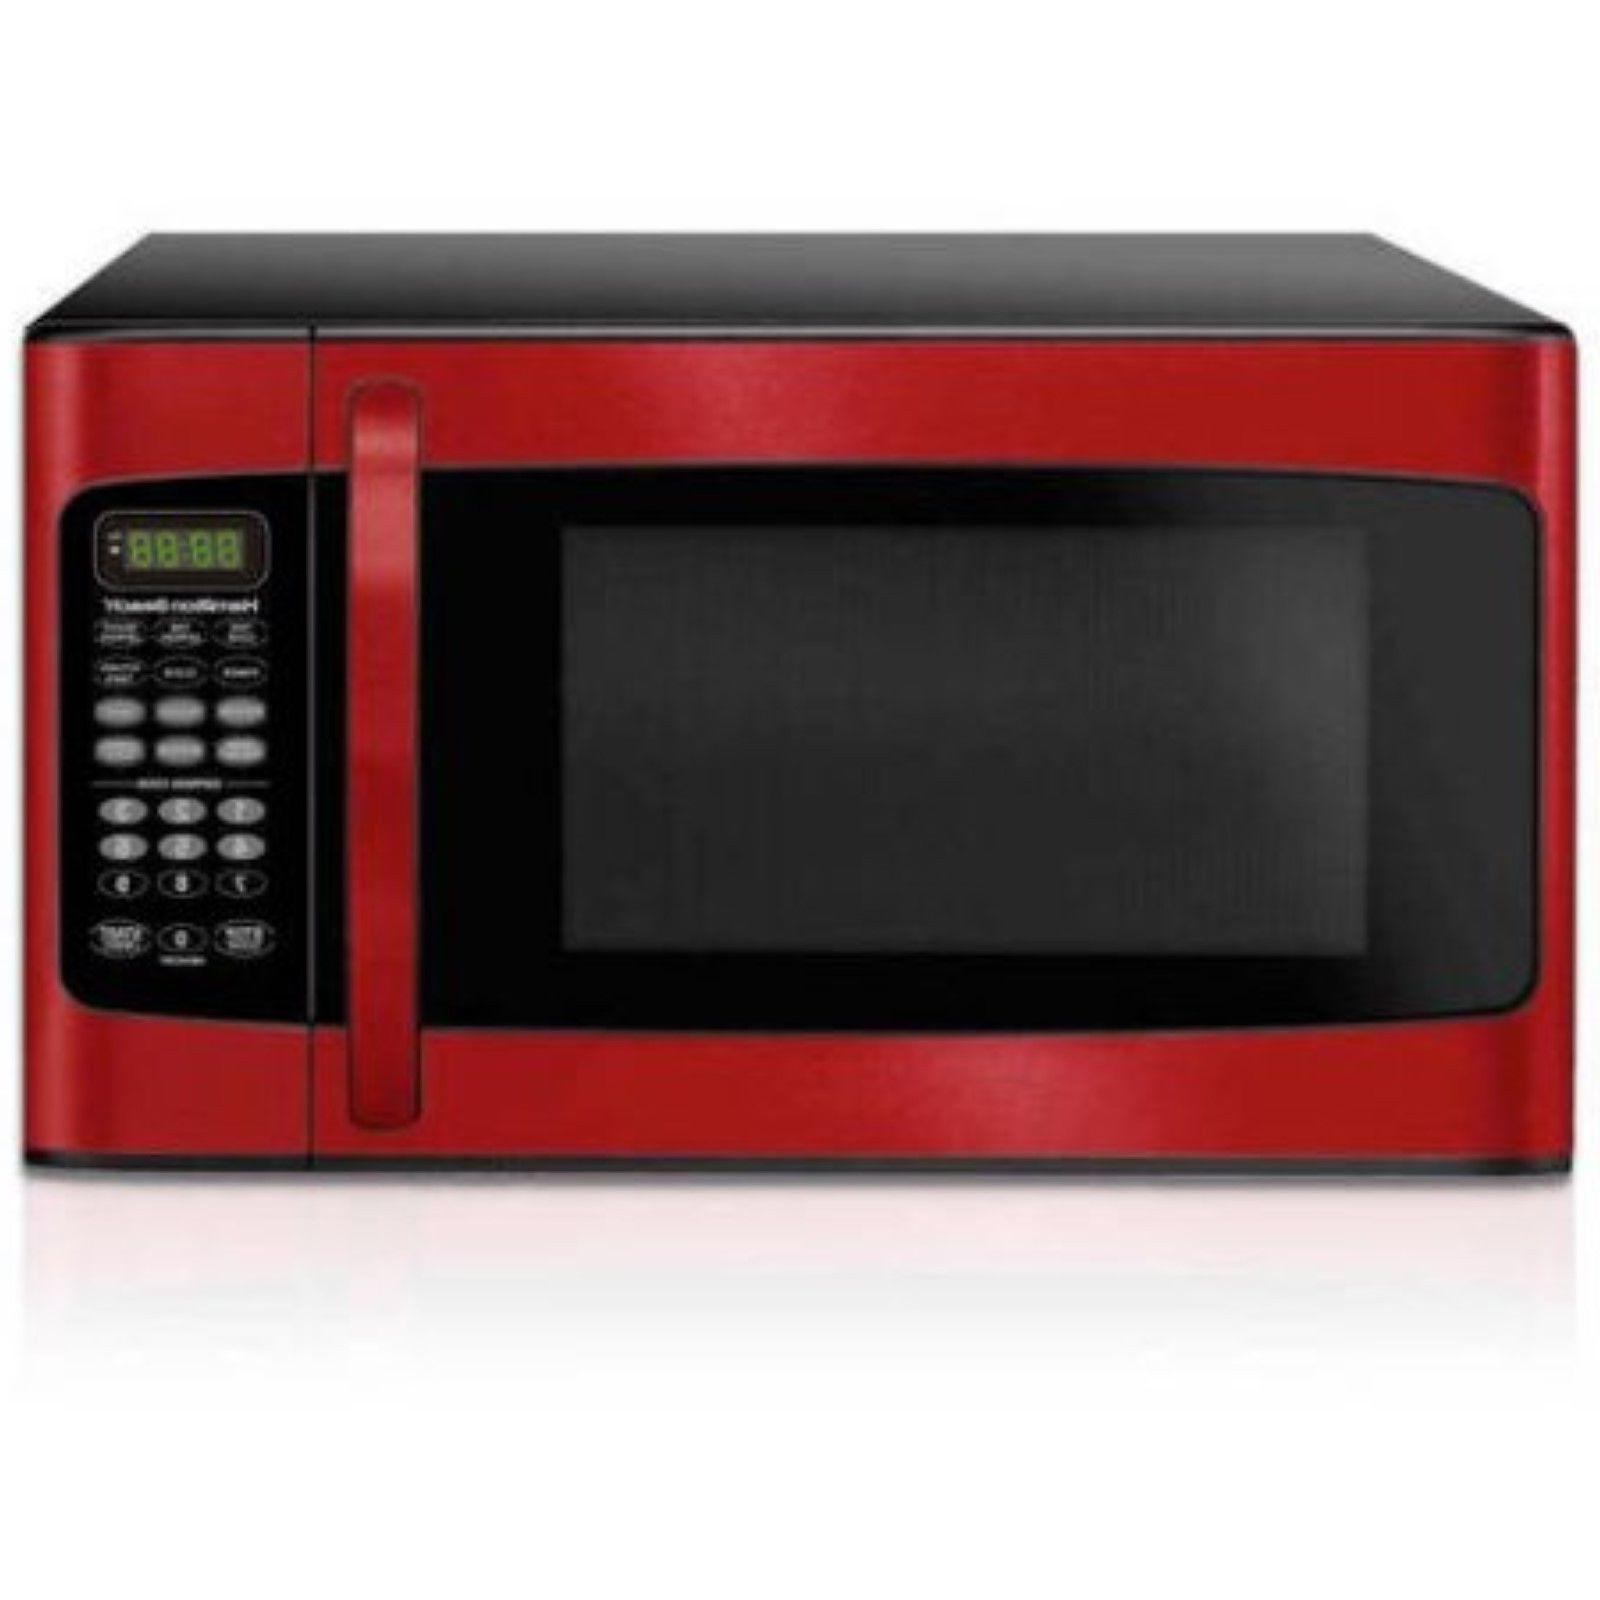 Hamilton Beach 1.1 FT Microwave 1000W Display Child-Safe